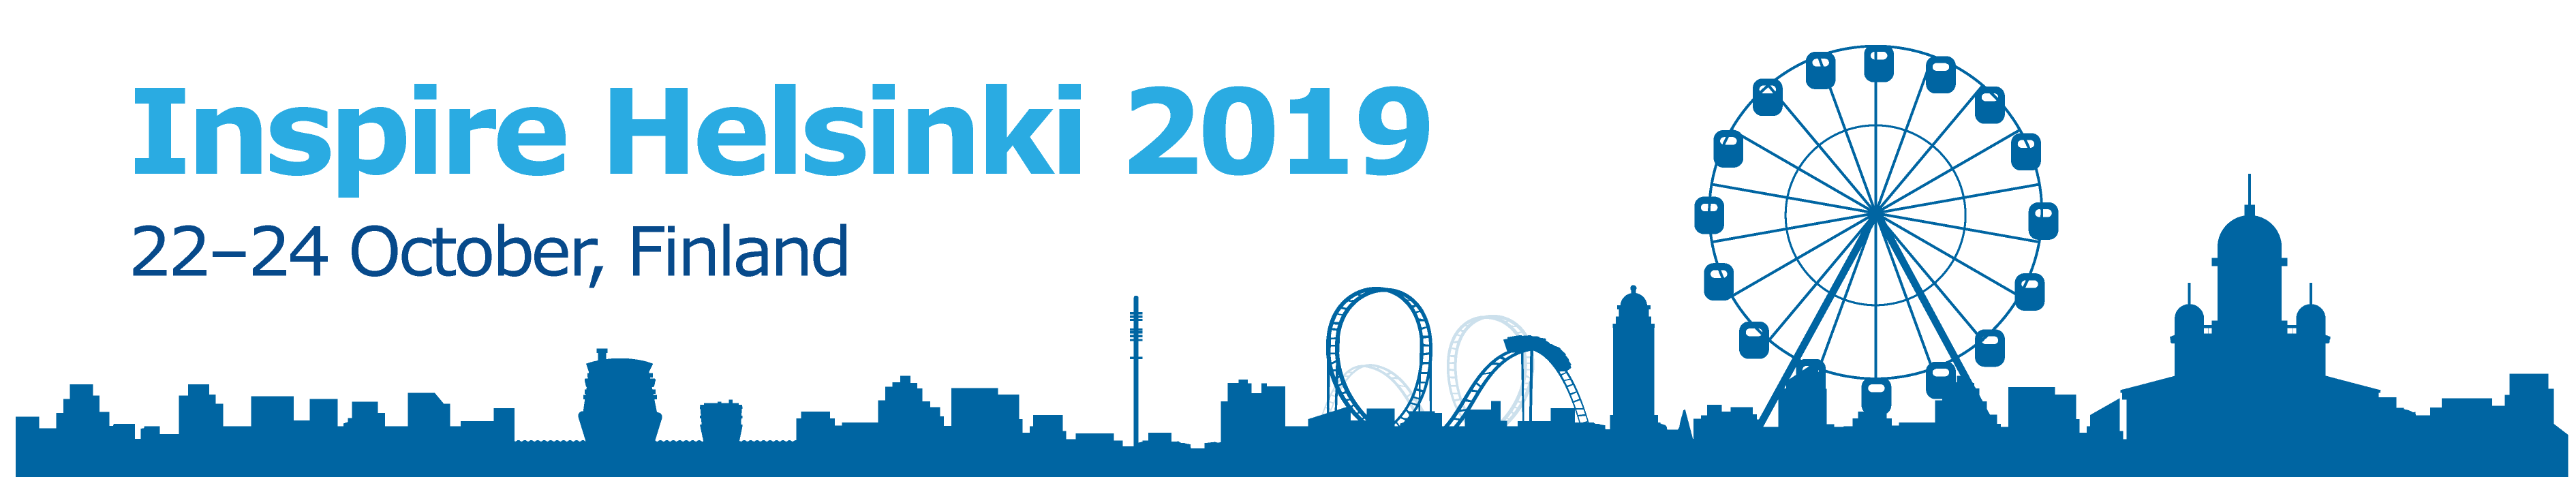 The picture shows the logo of the INSPIRE Helsinki 2019 conference.